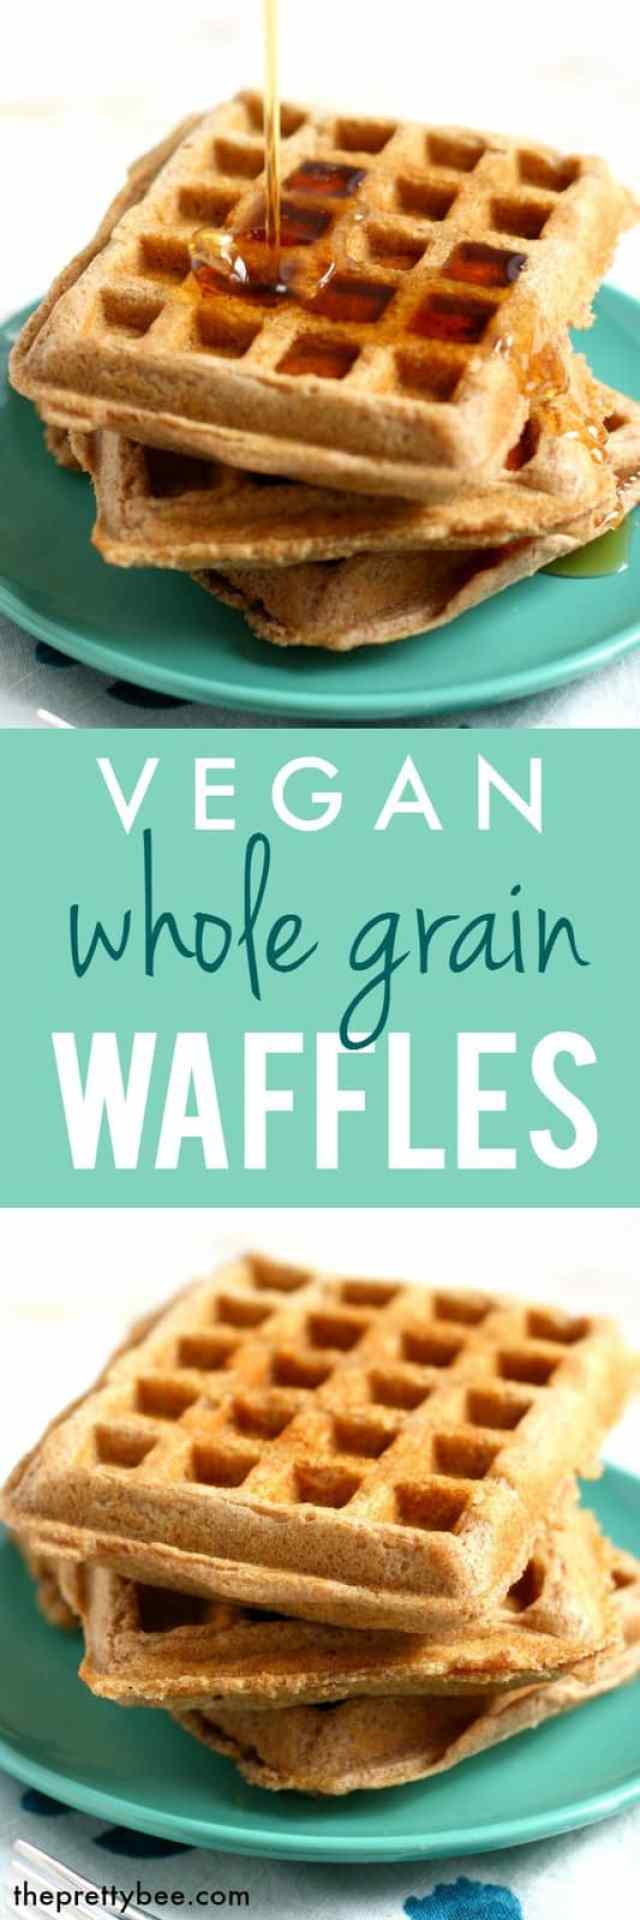 These whole grain spelt vegan waffles are delicious and light and fluffy!